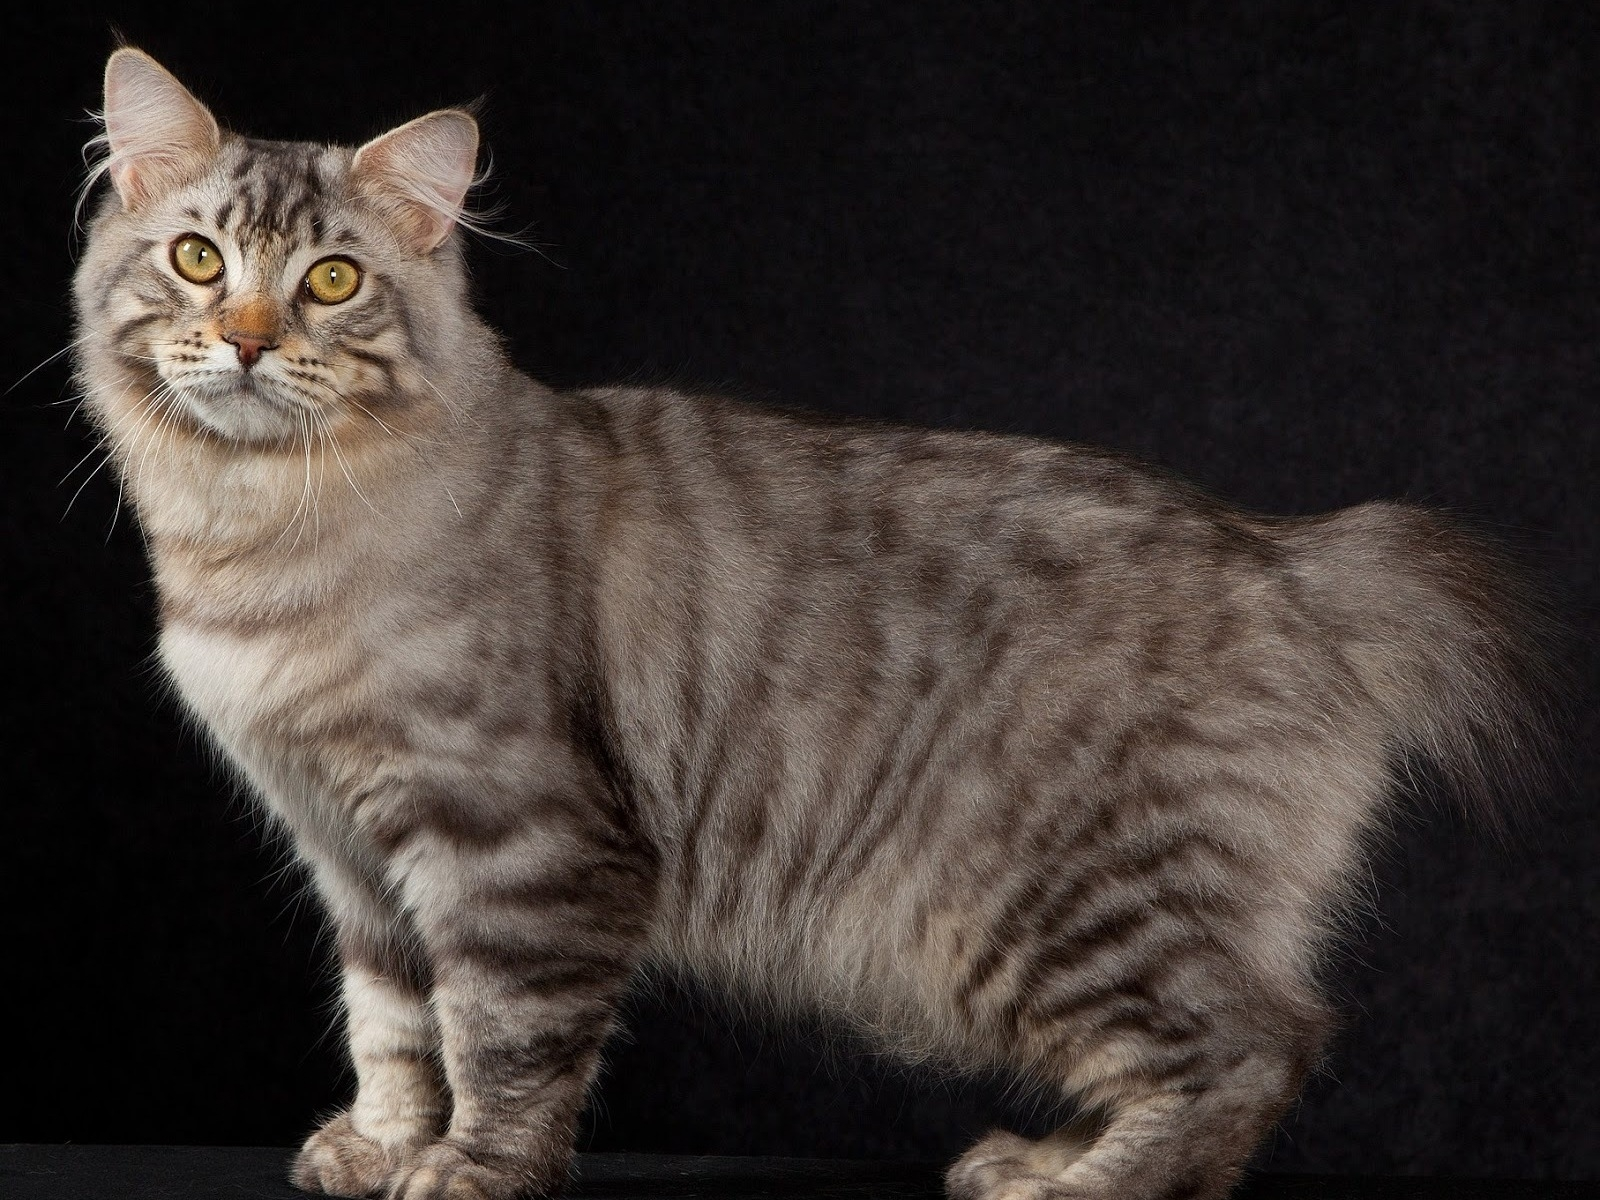 American Bobtail Cat Pose for 1600 x 1200 resolution